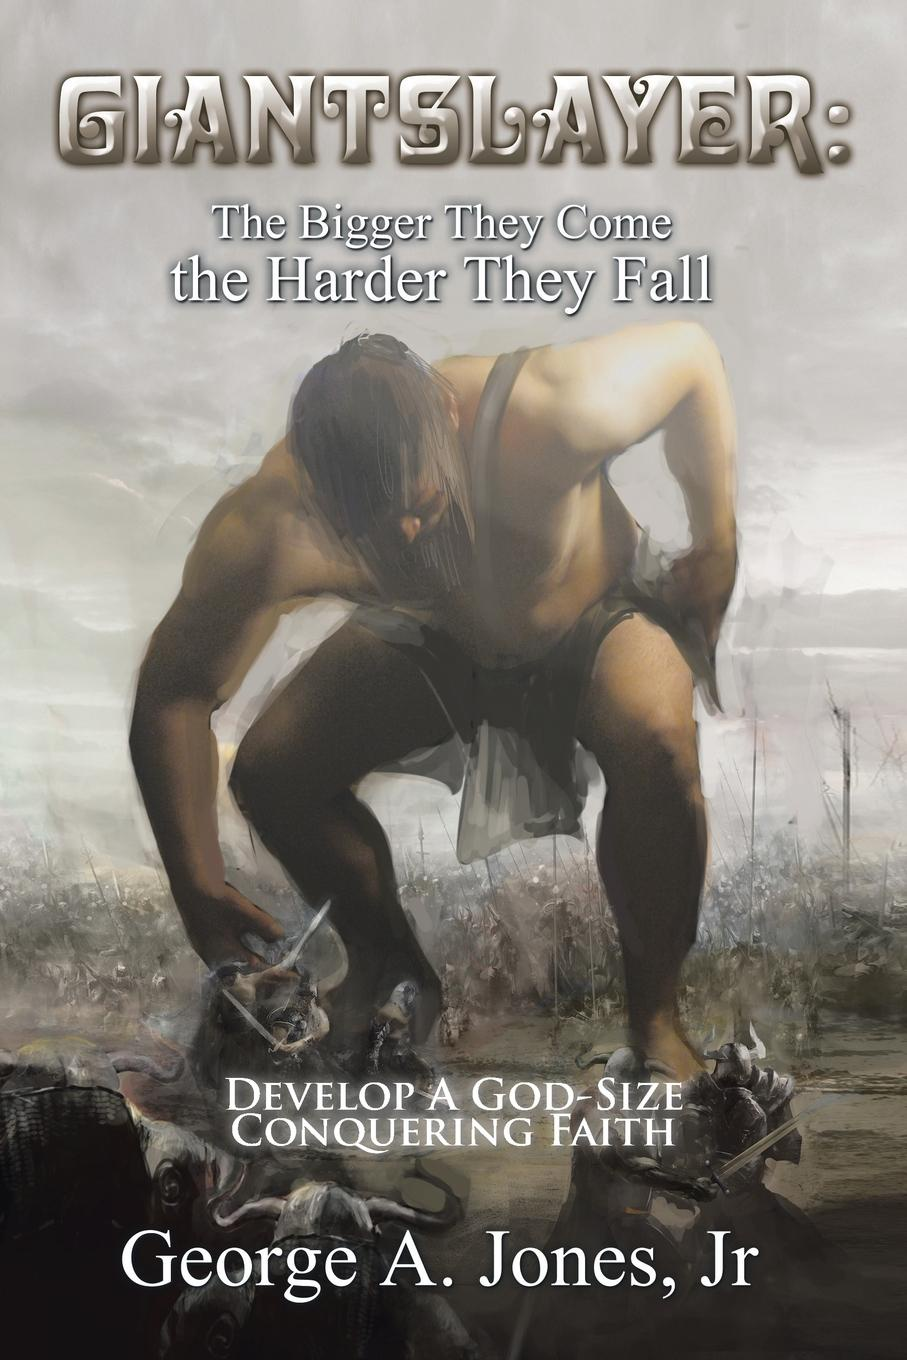 George A. Jones Jr Giantslayer. the Bigger They Come the Harder They Fall: Develop a God-Size Conquering Faith